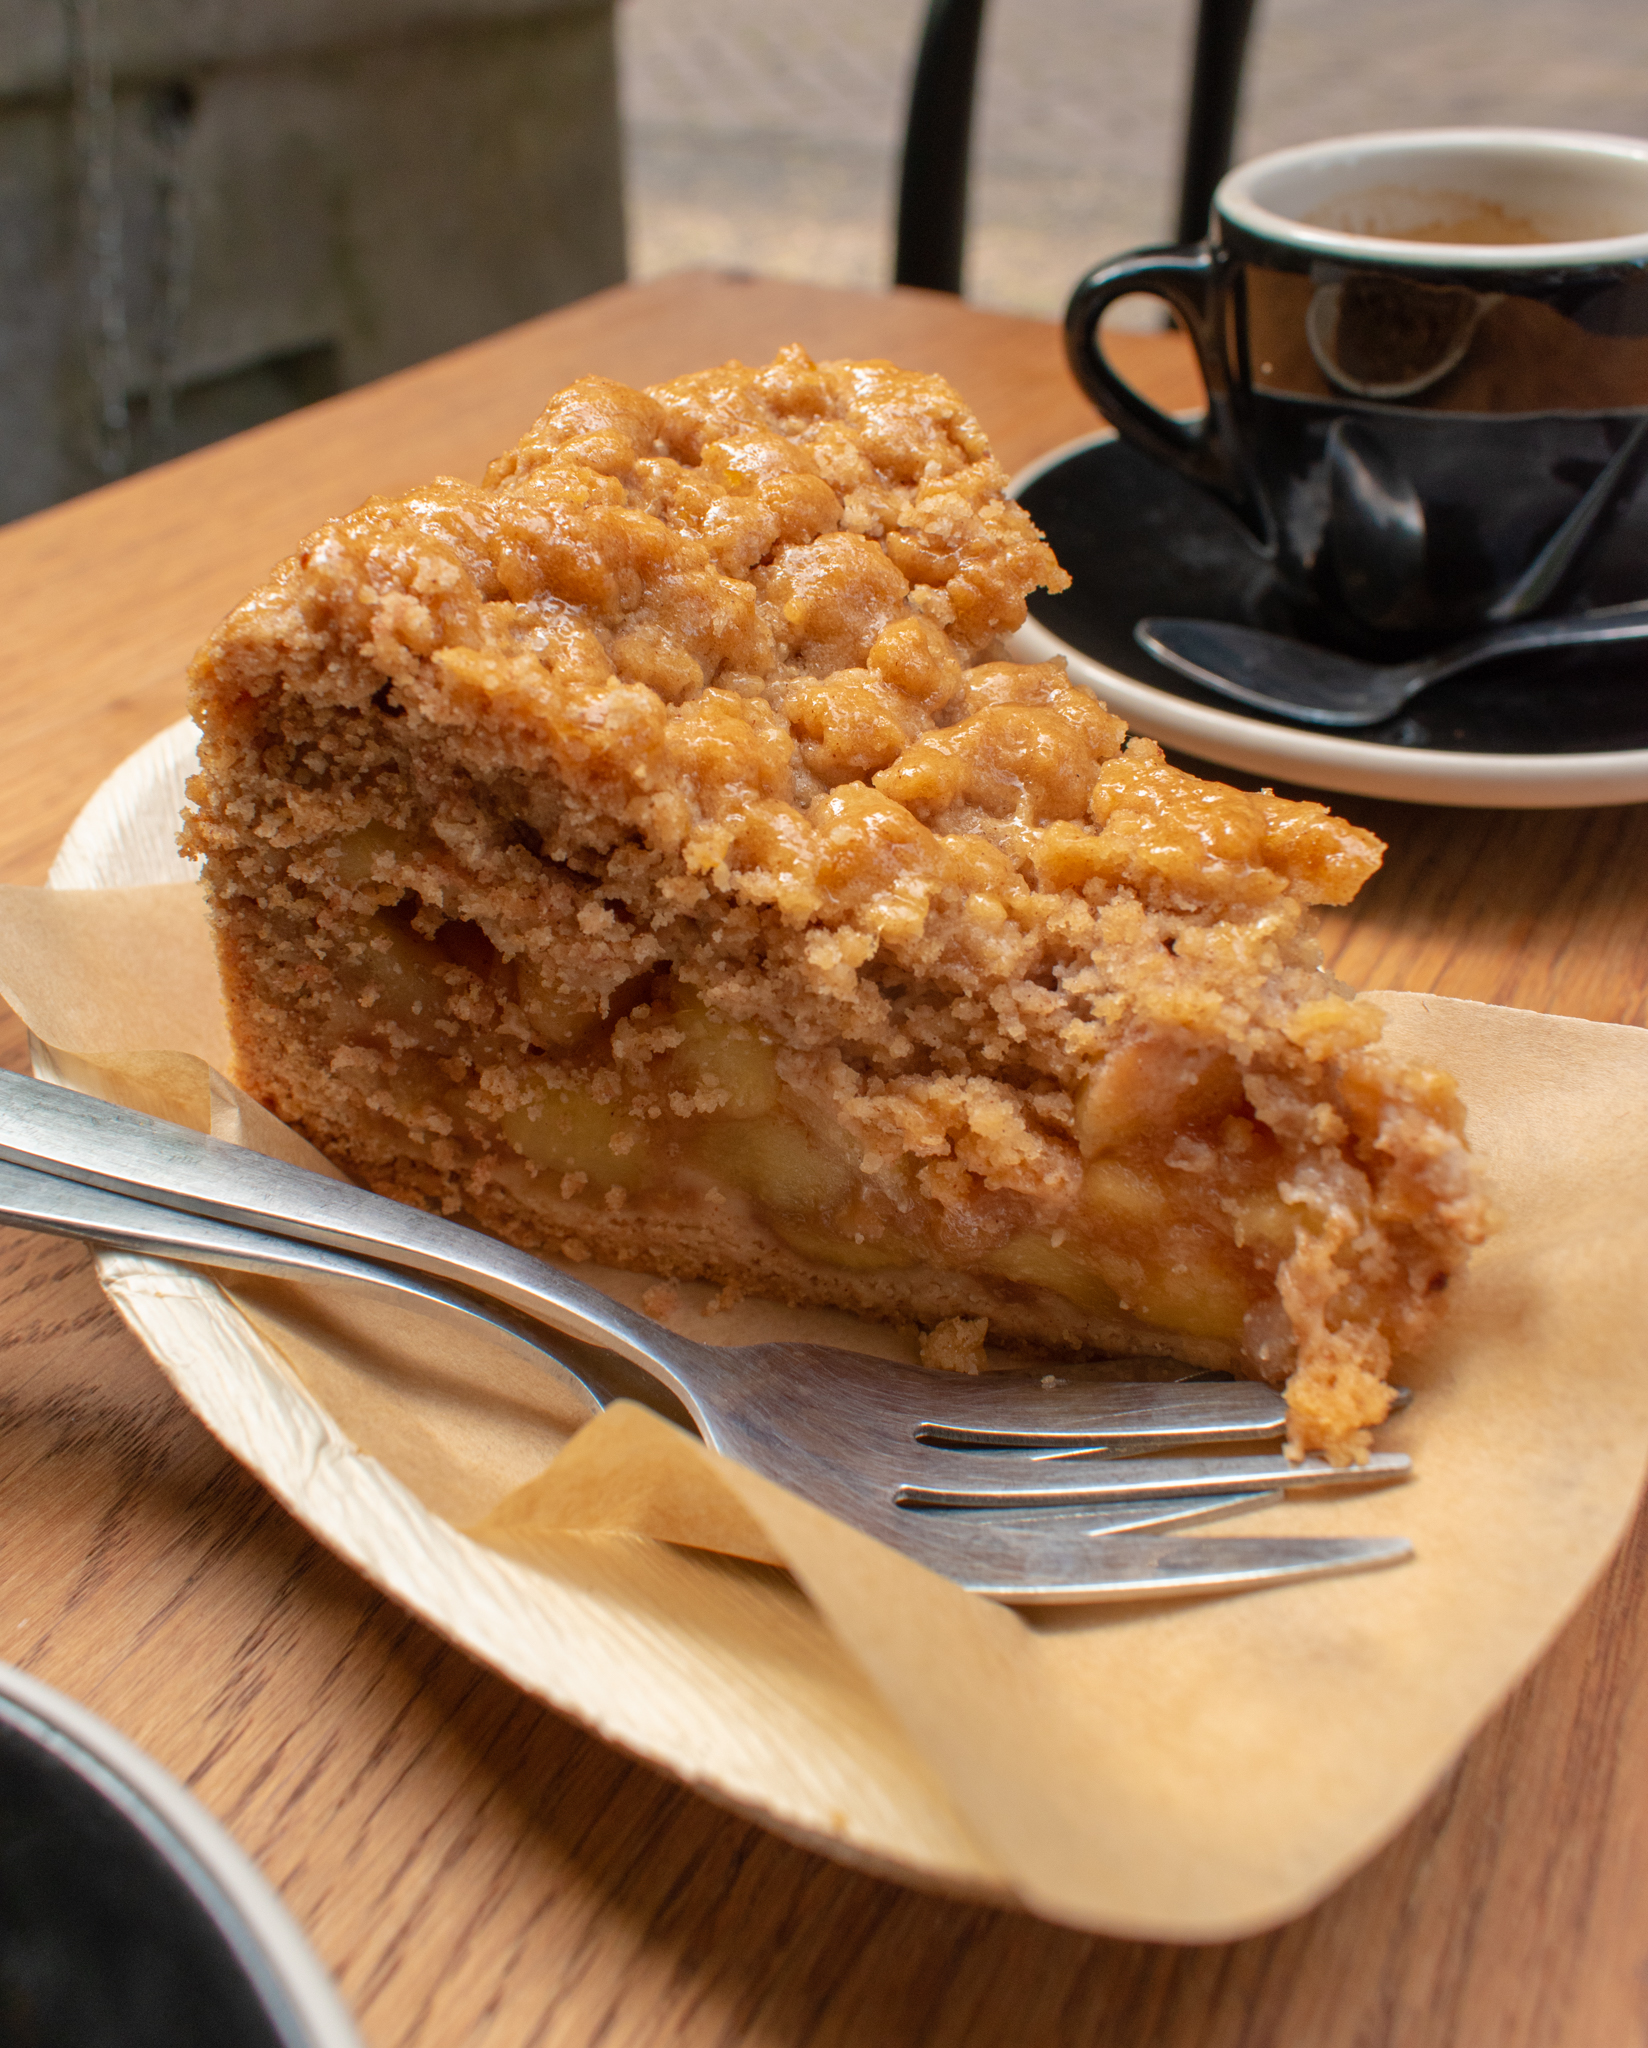 Uprooted-Traveler-Amsterdam-dutch-apple-pie-vegan-guide-breakfast-market-netherlands.jpg